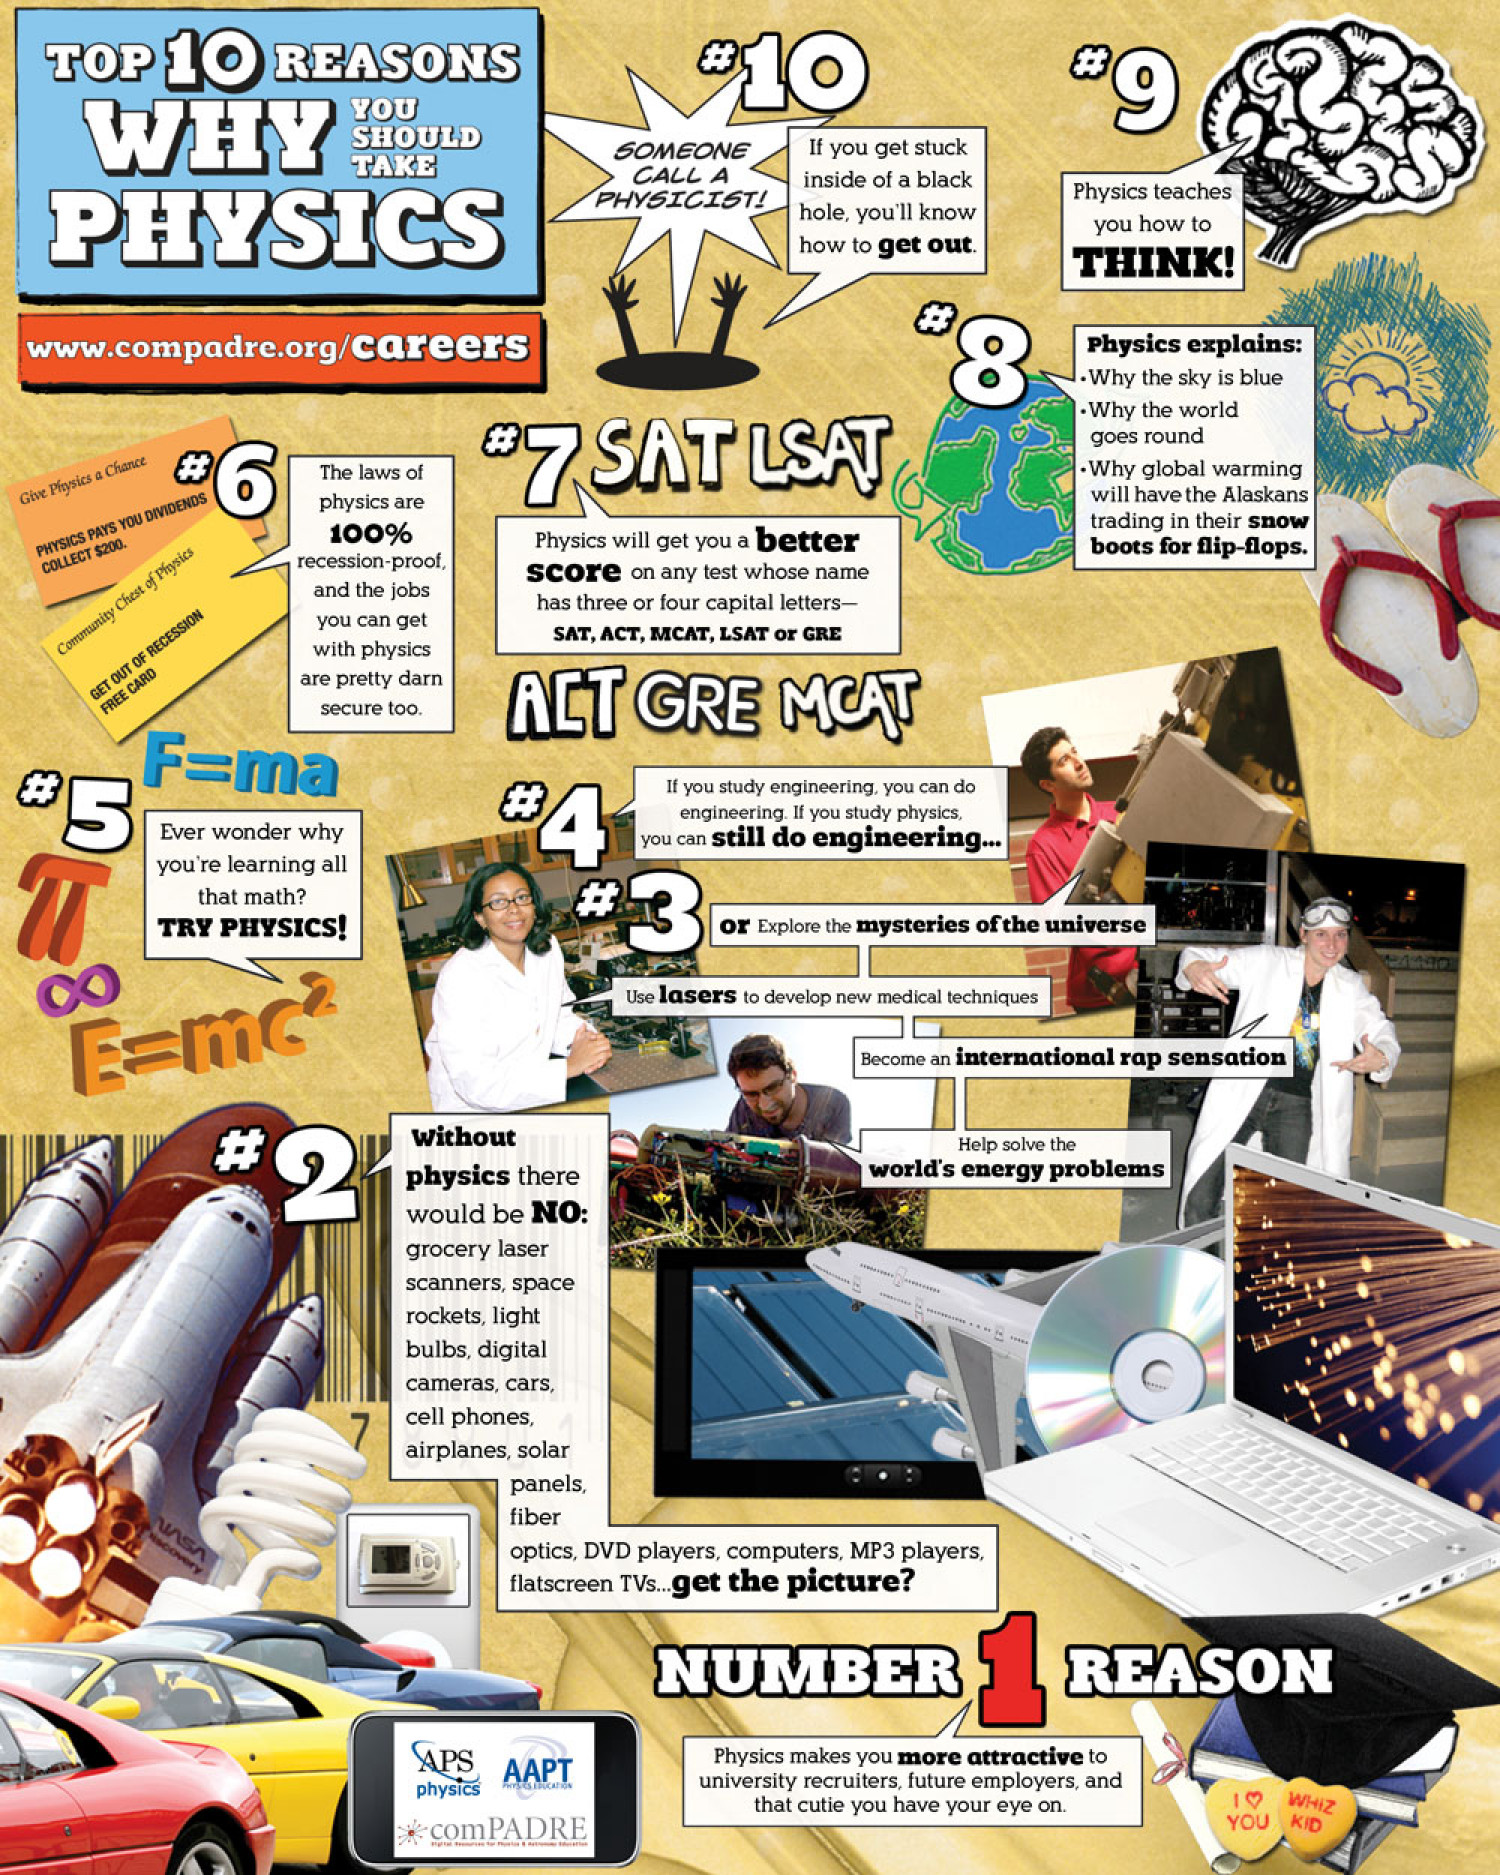 Why You Should Take Physics Infographic